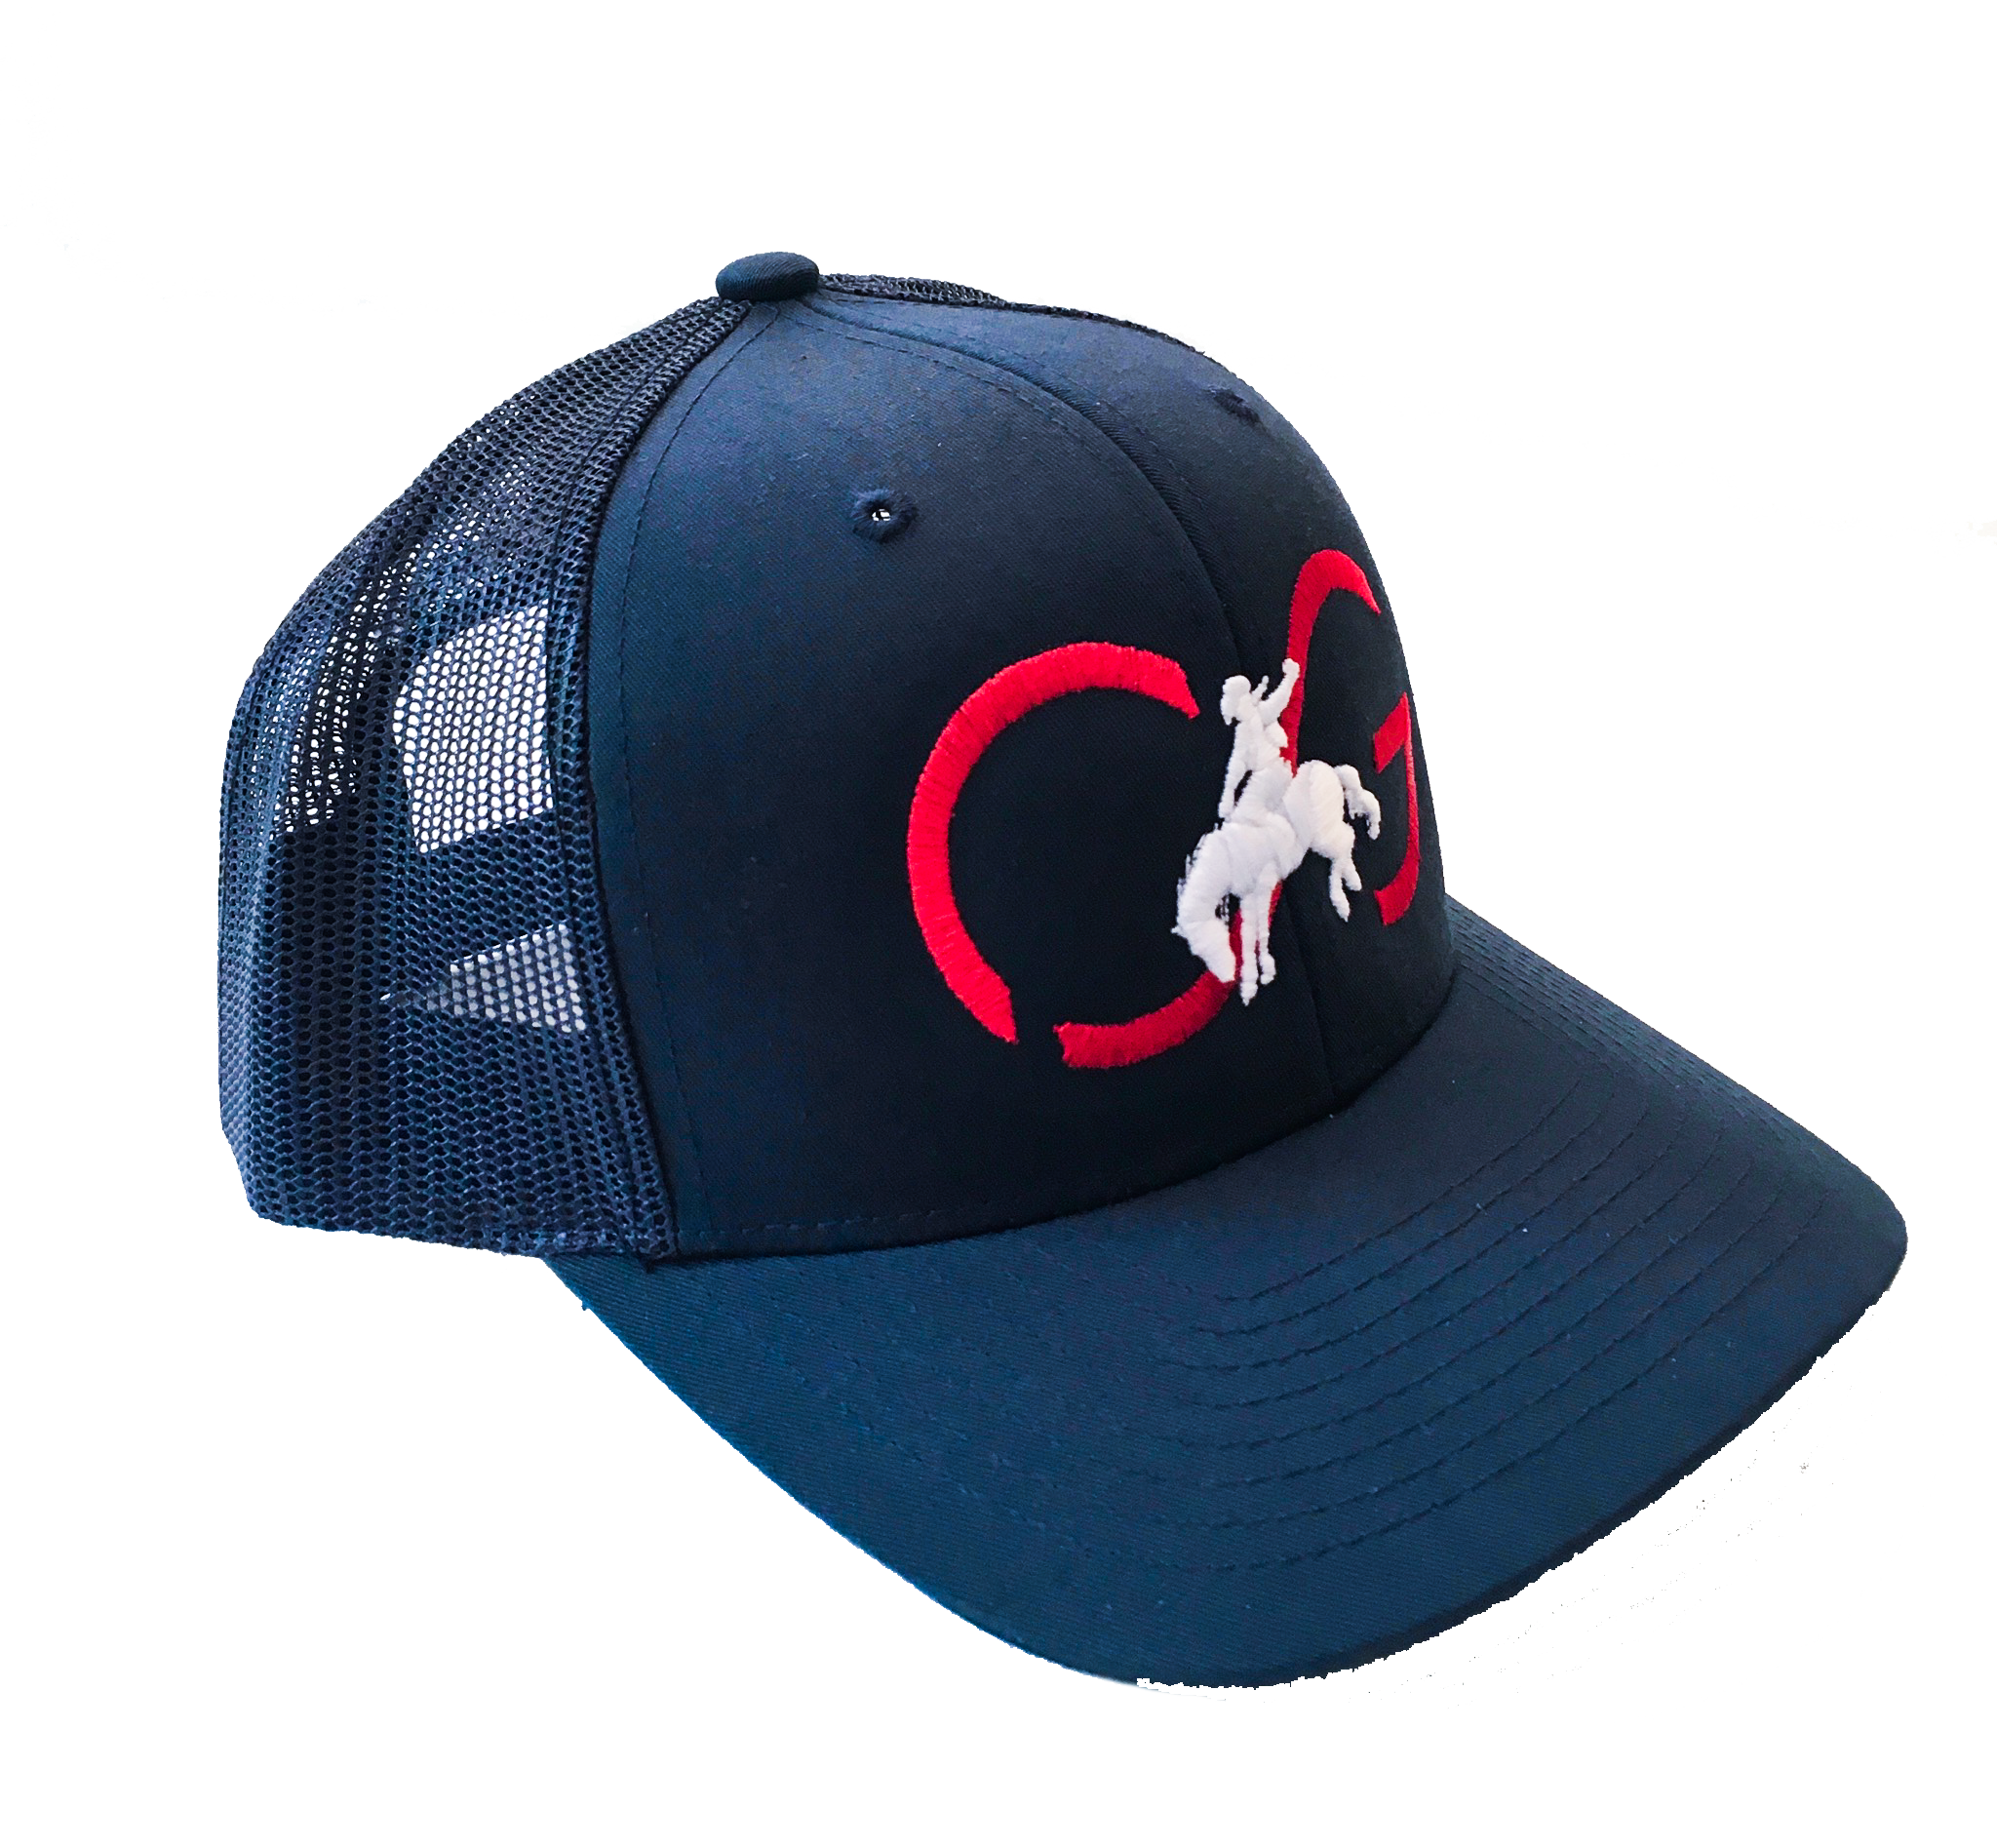 Classic SNAPBACK -Navy/Mesh back with Red CG and White Bronco